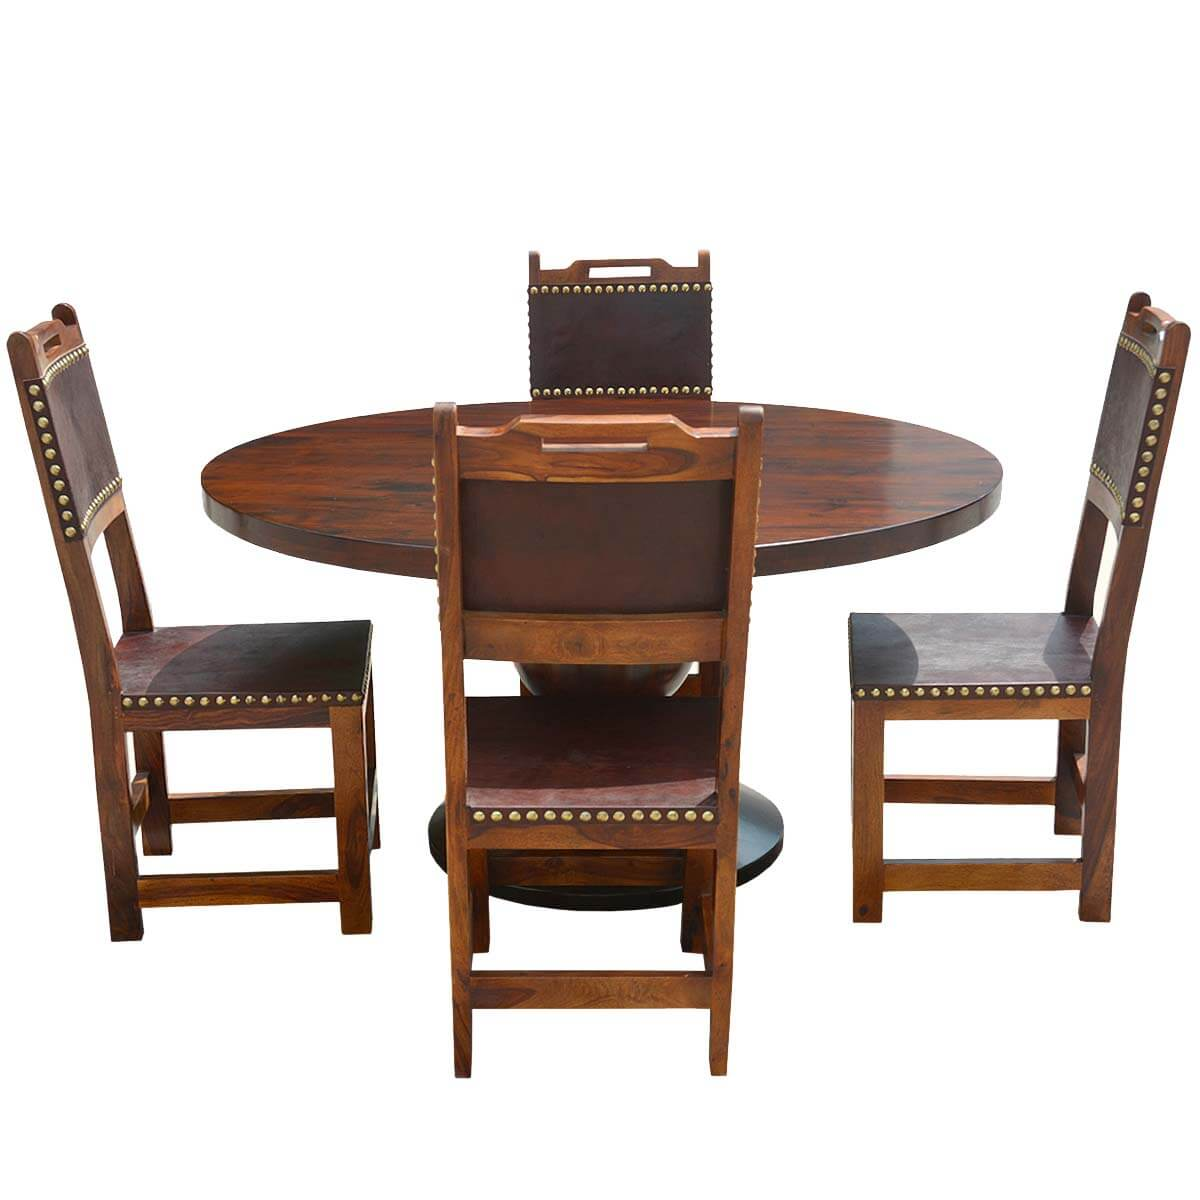 Santa ana round kitchen dining table set with leather back for Leather chairs for kitchen table